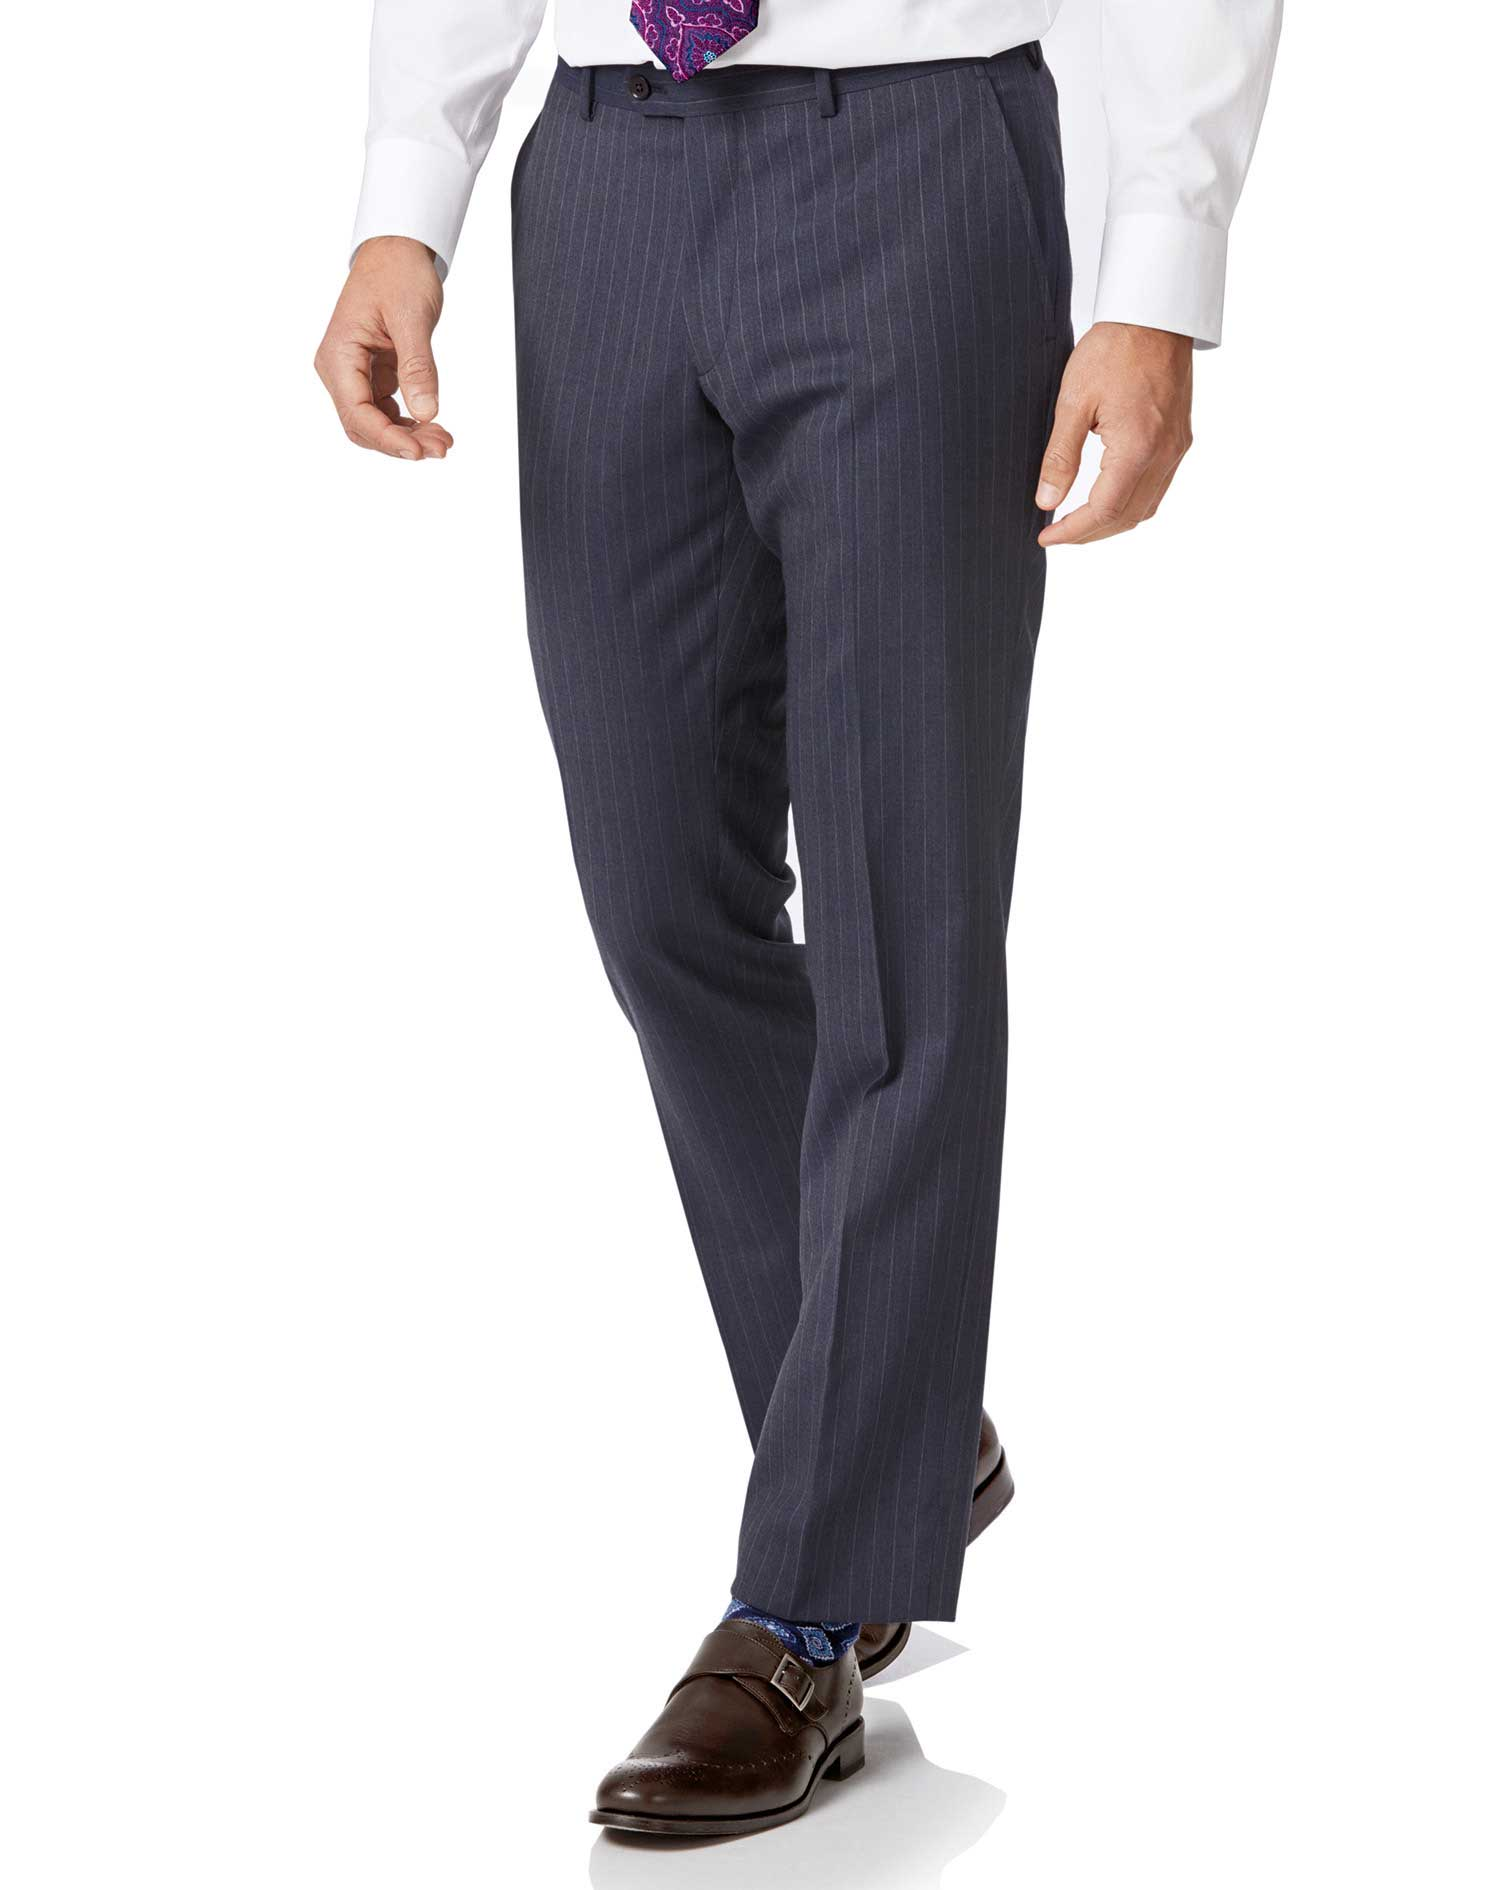 Image of Charles Tyrwhitt Airforce Stripe Slim Fit Panama Business Suit Trousers Size W81 L86 by Charles Tyrwhitt